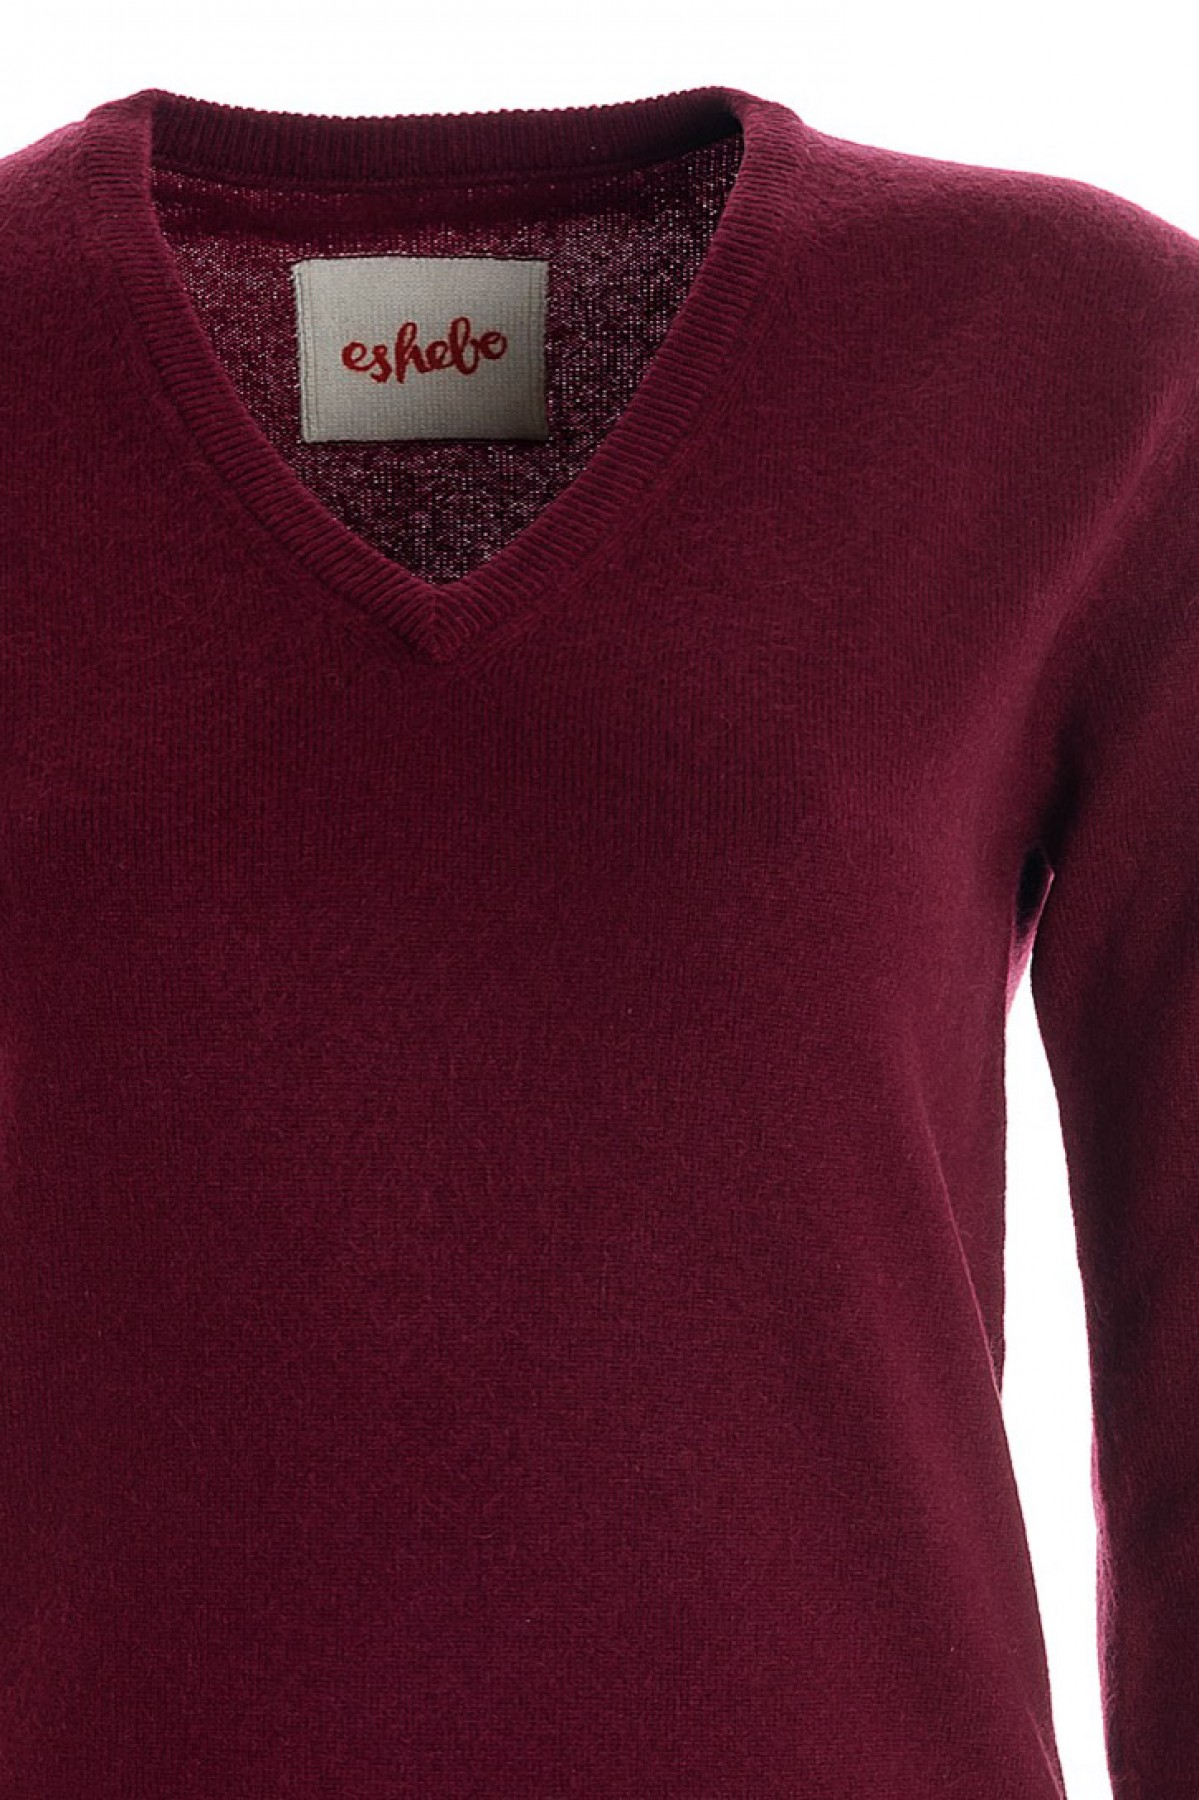 Women's cashmere V-neck sweater burgundy